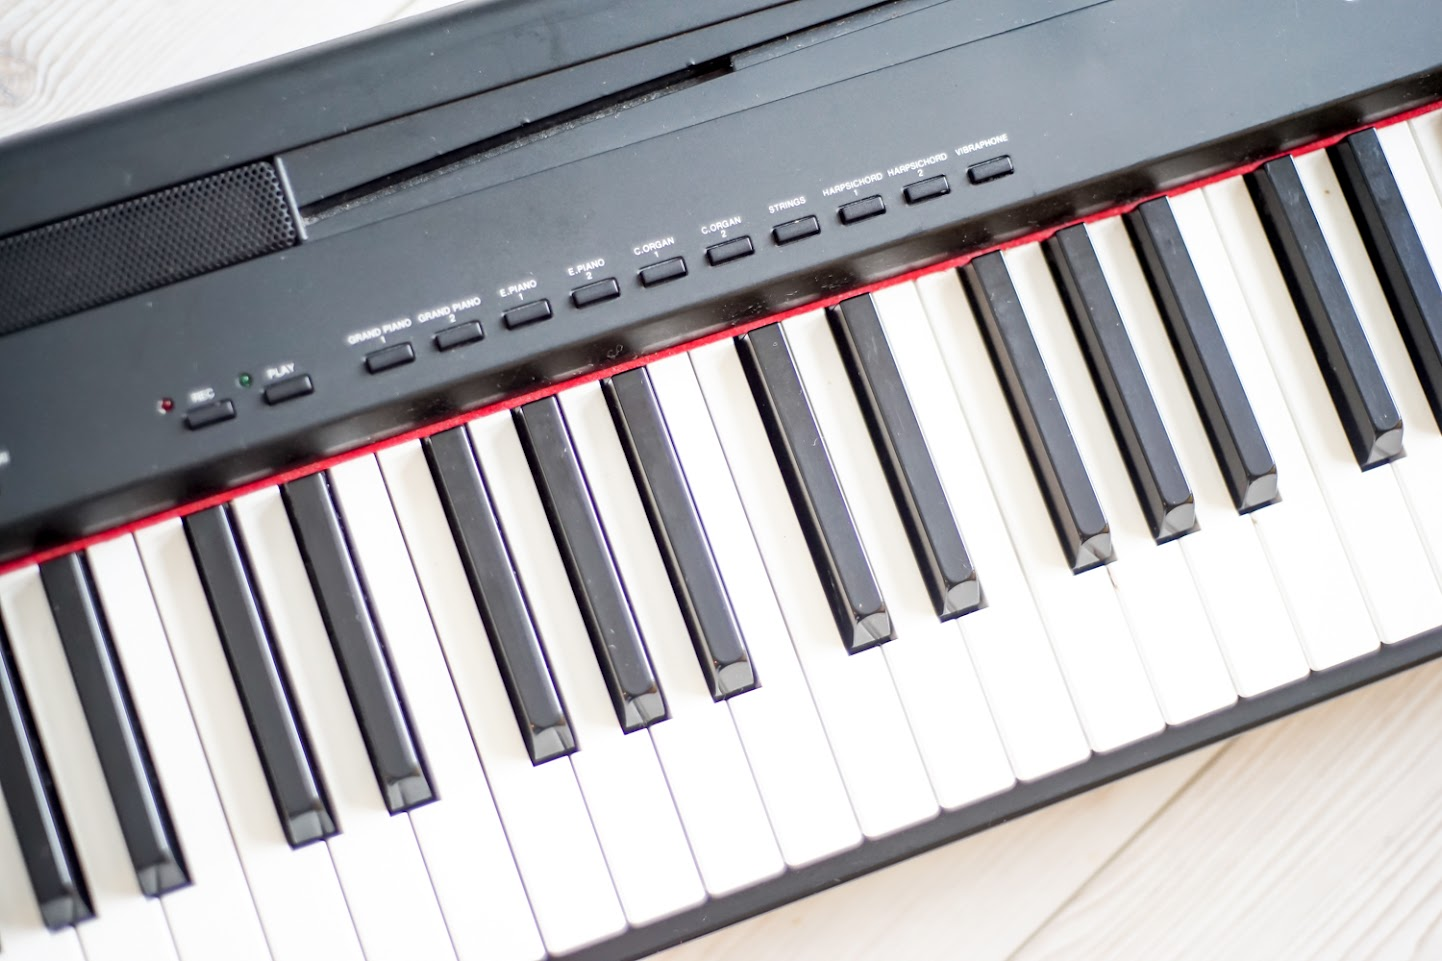 Yamaha p85 stage digital full size piano 88 key weighted keyboard standdelivery for Yamaha fully weighted keyboard